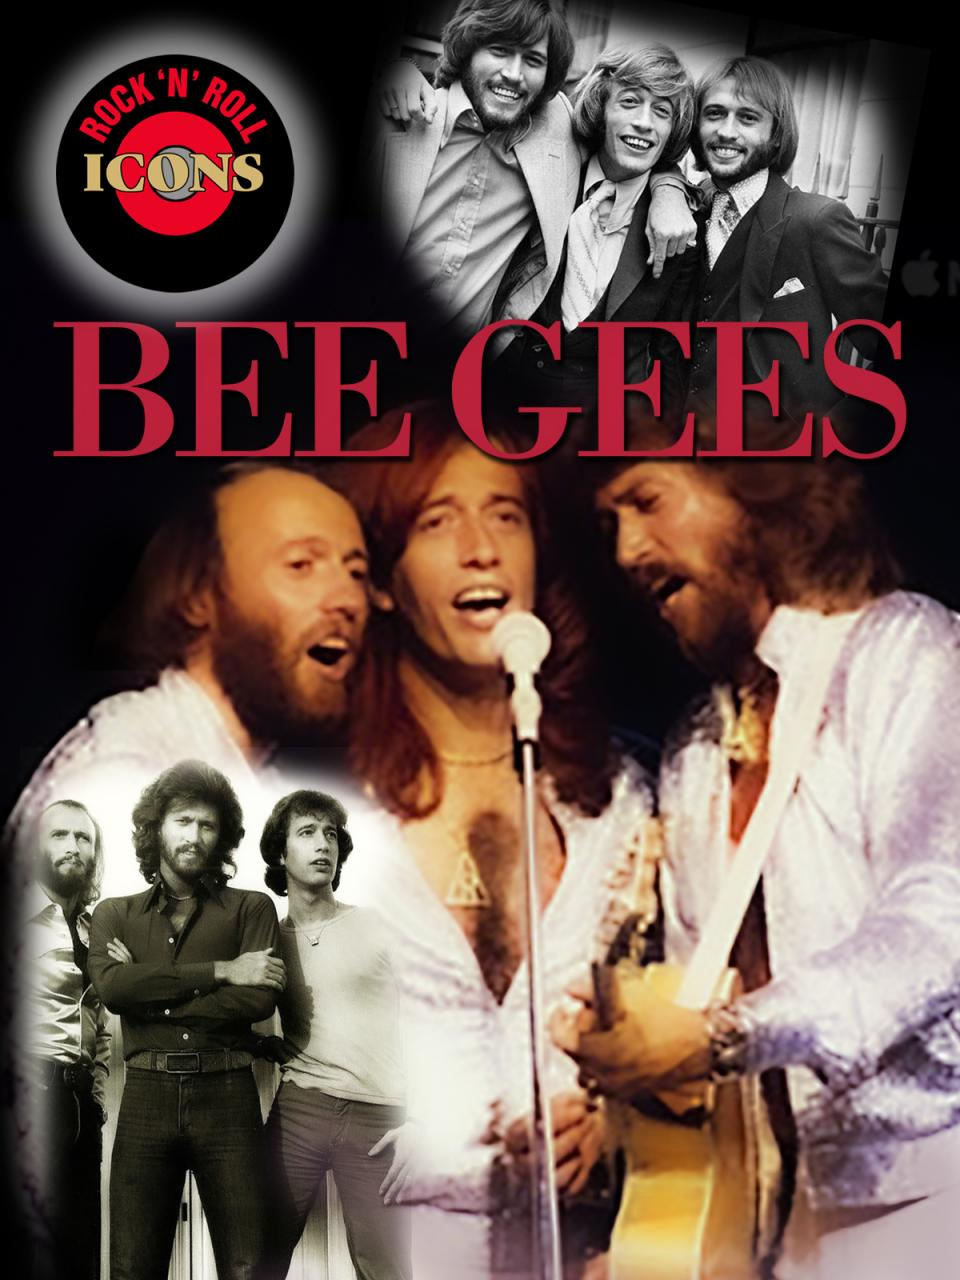 Rock Icons: Bee Gees